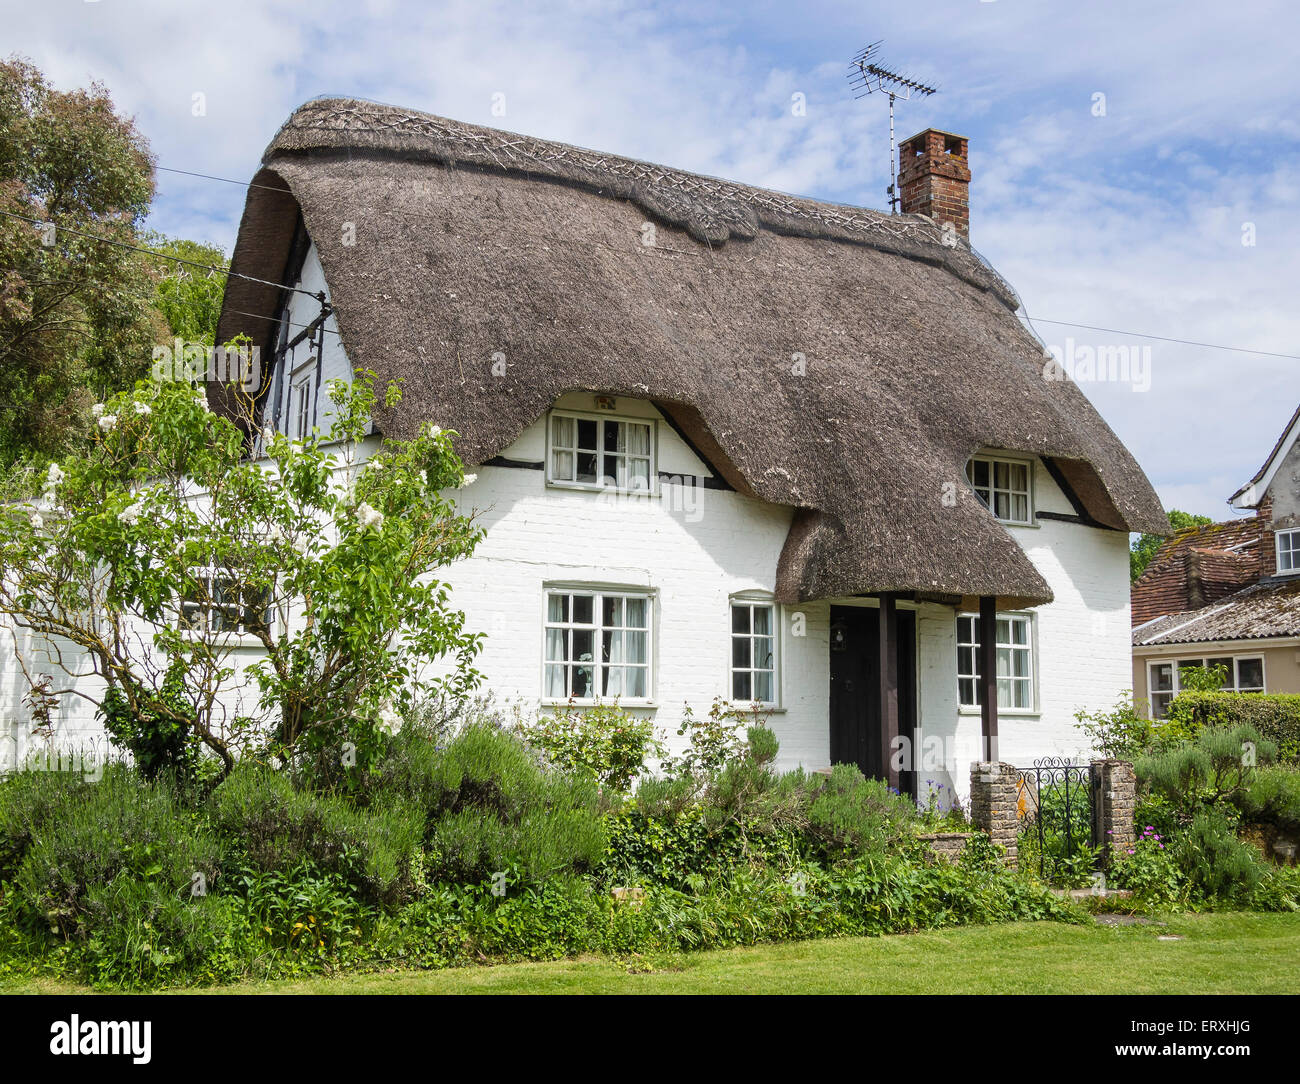 Thatched Cottage in the village of Martin, Hampshire, England, UK Stock Photo